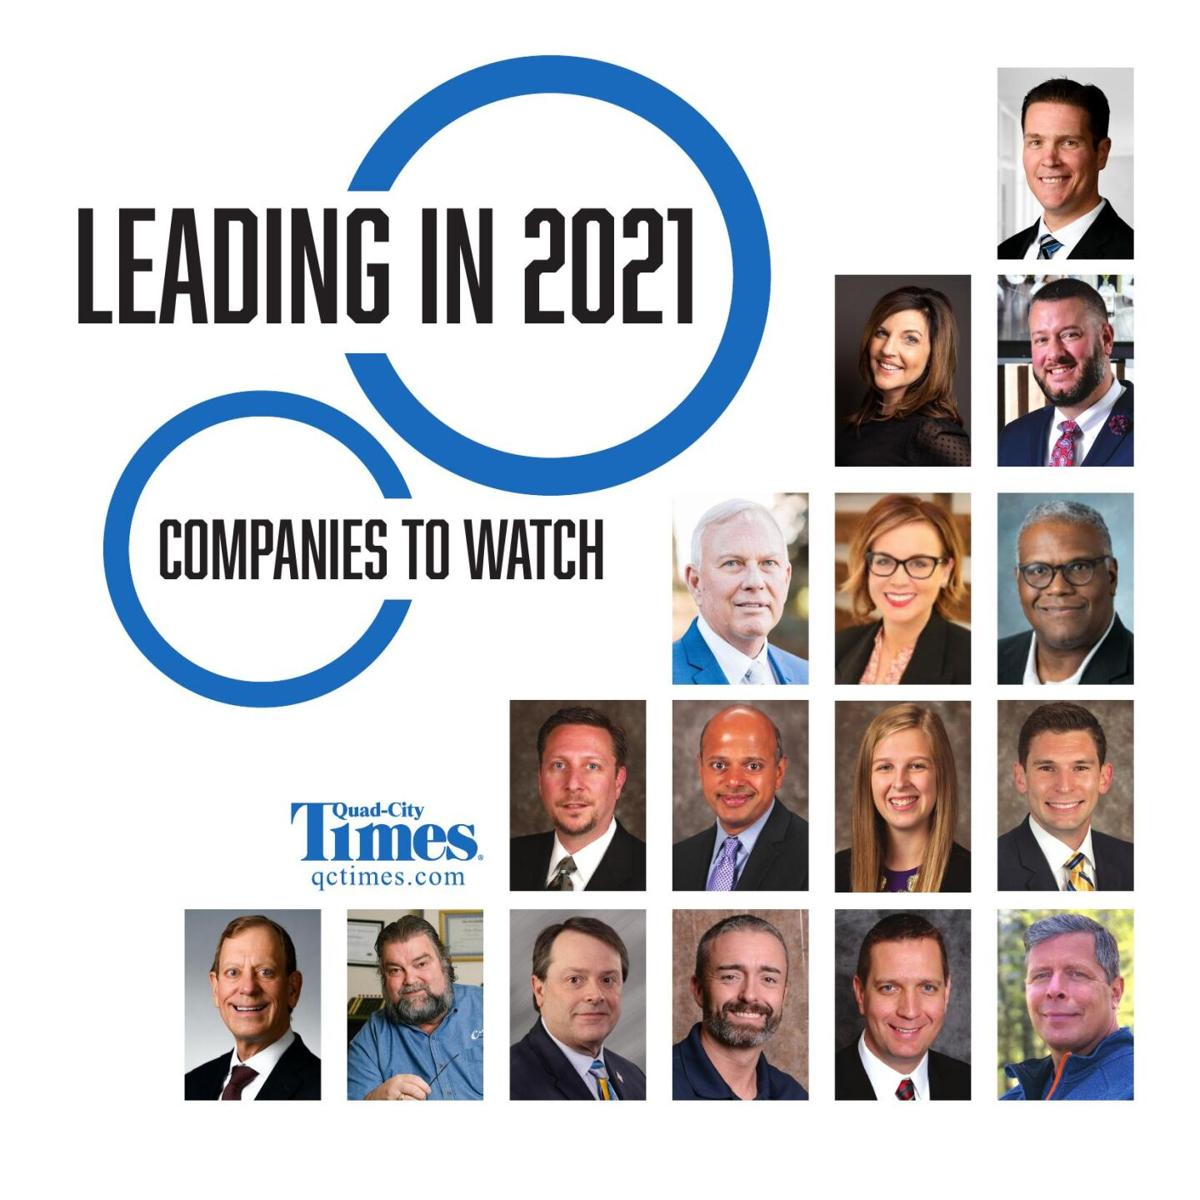 Leading in 2021: Companies to Watch